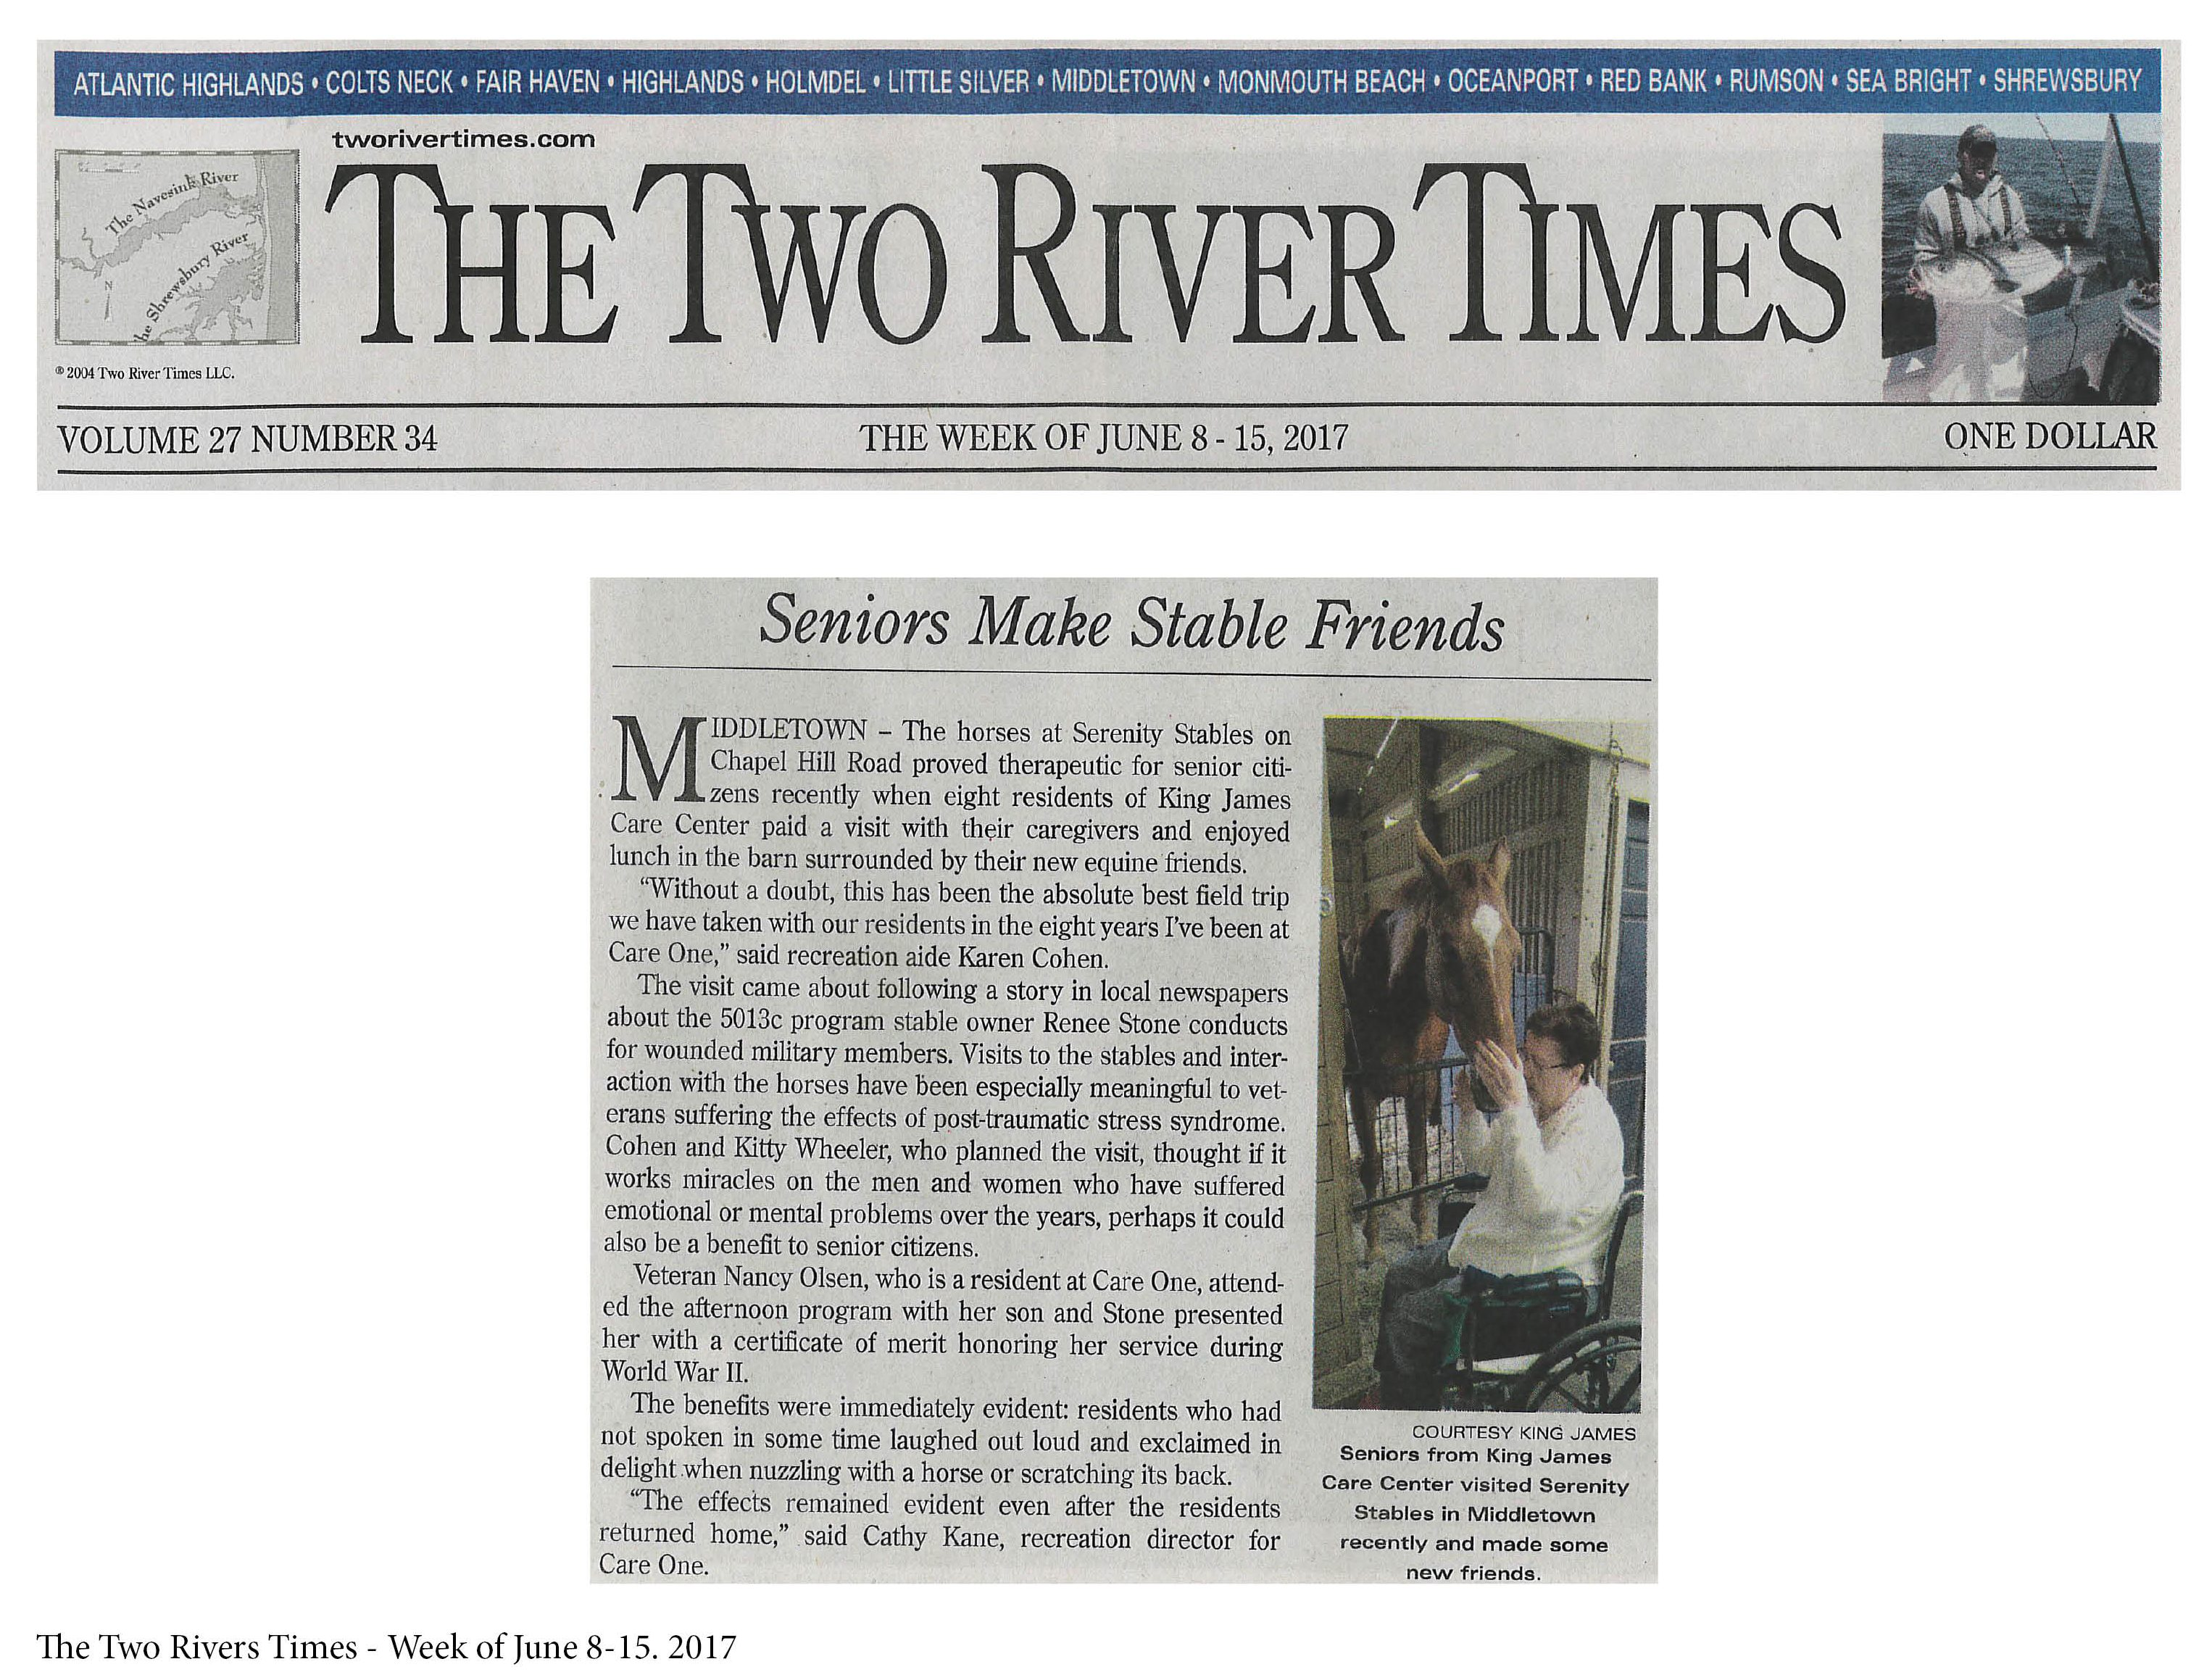 News: The Two River Times